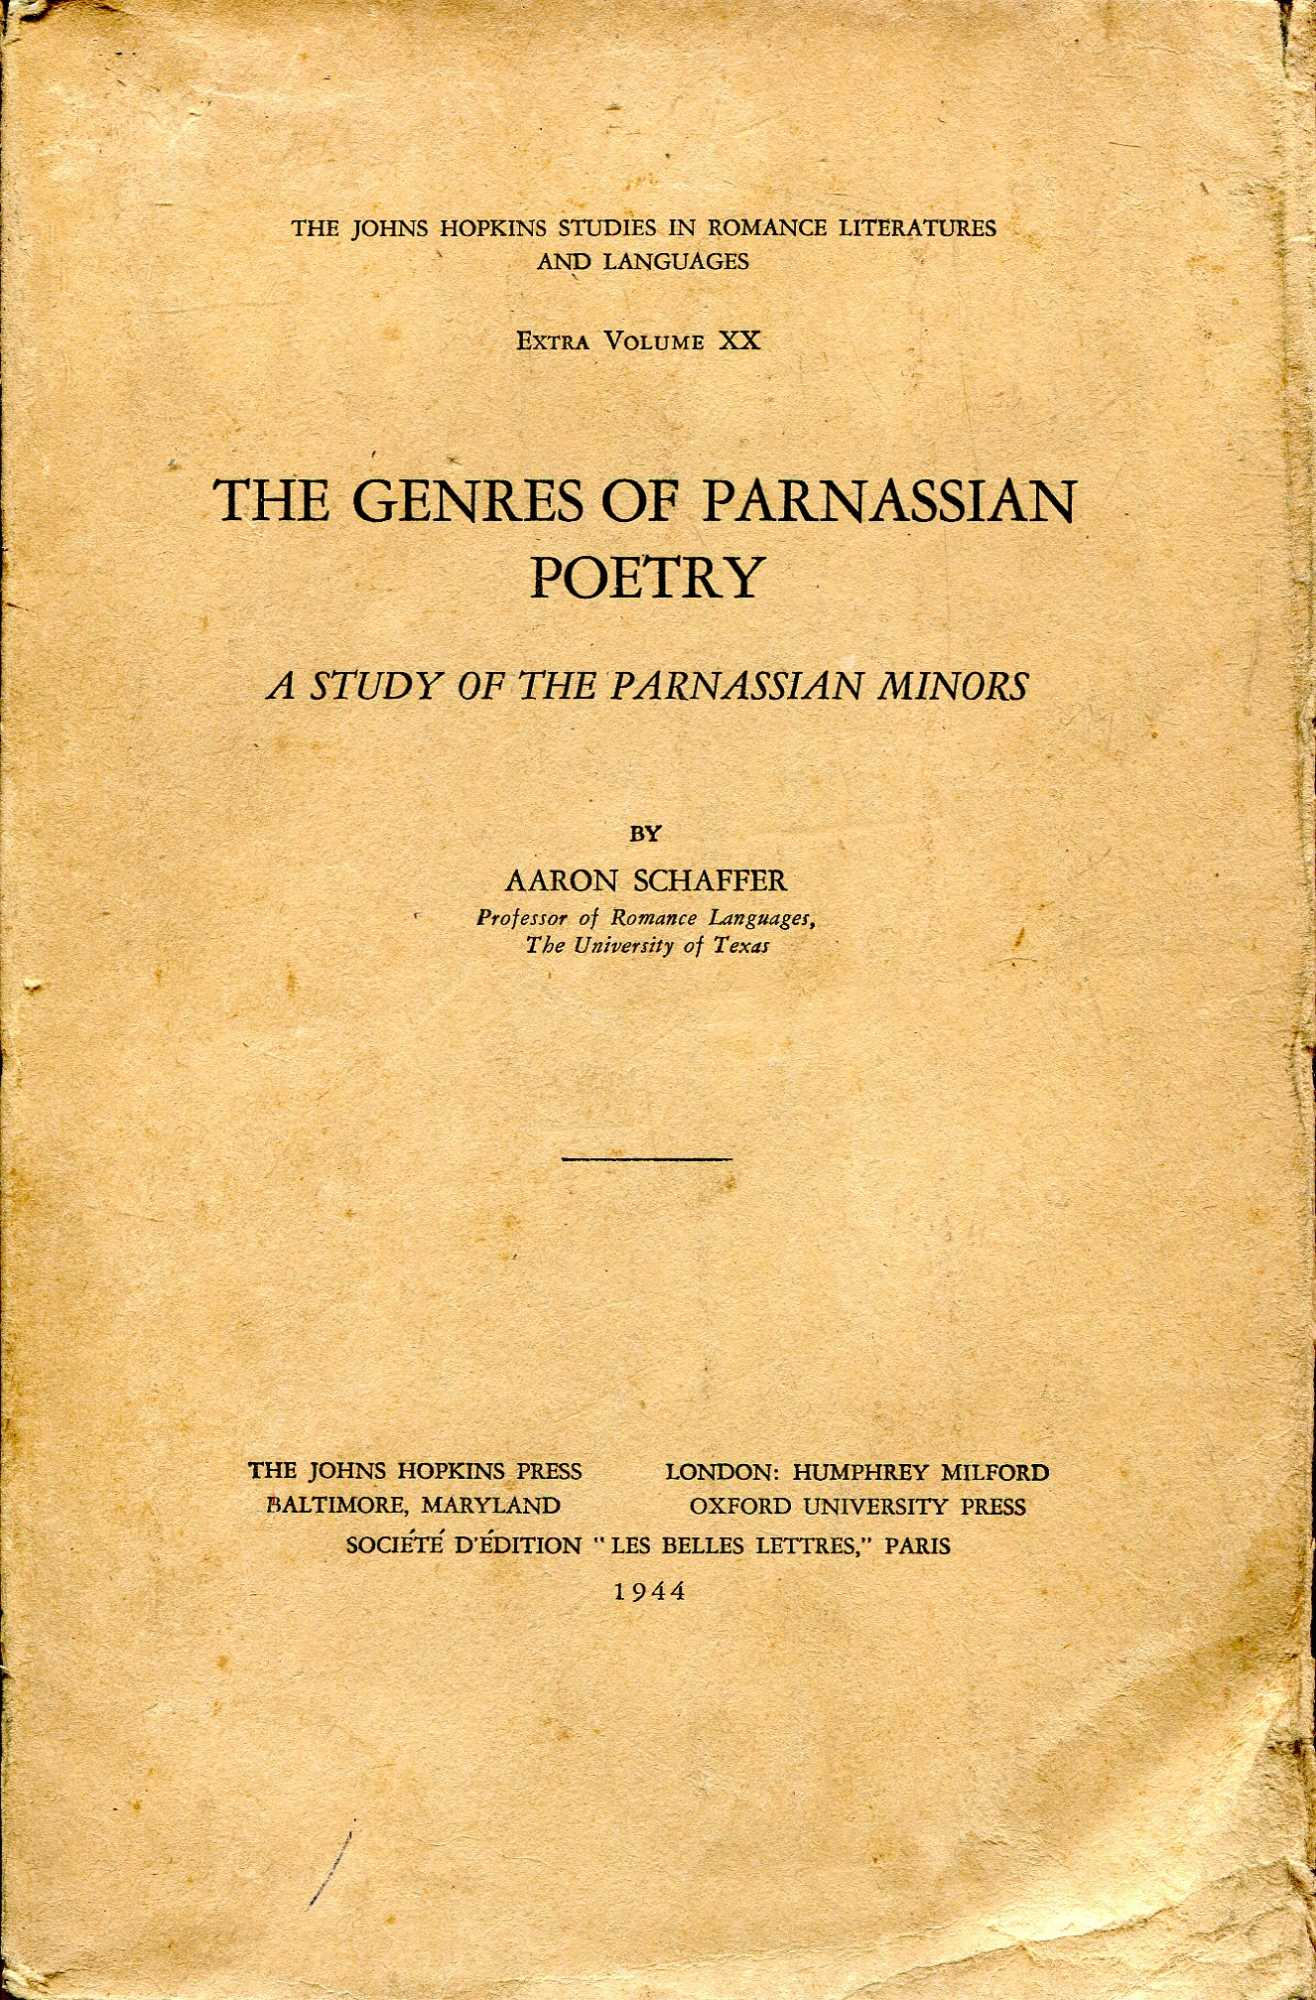 Image for The Genres of Parnassian Poetry : A Study in the Pasrnassian Minors